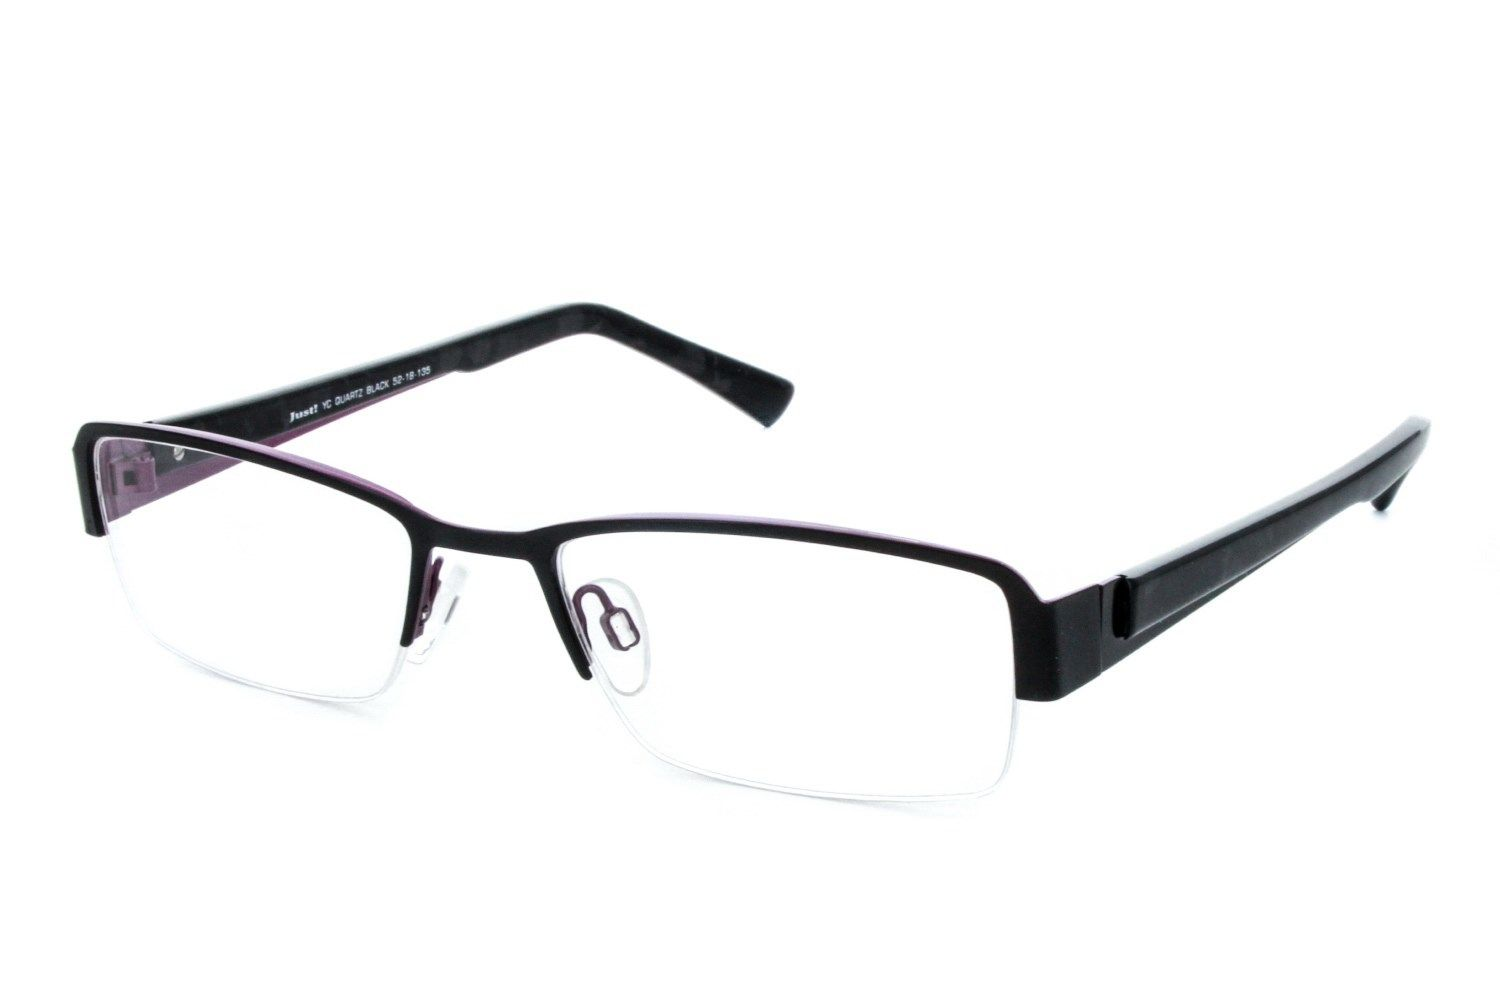 Just! YC Quartz - Eyeglasses At America\'s Best Contacts & Eyeglasses ...